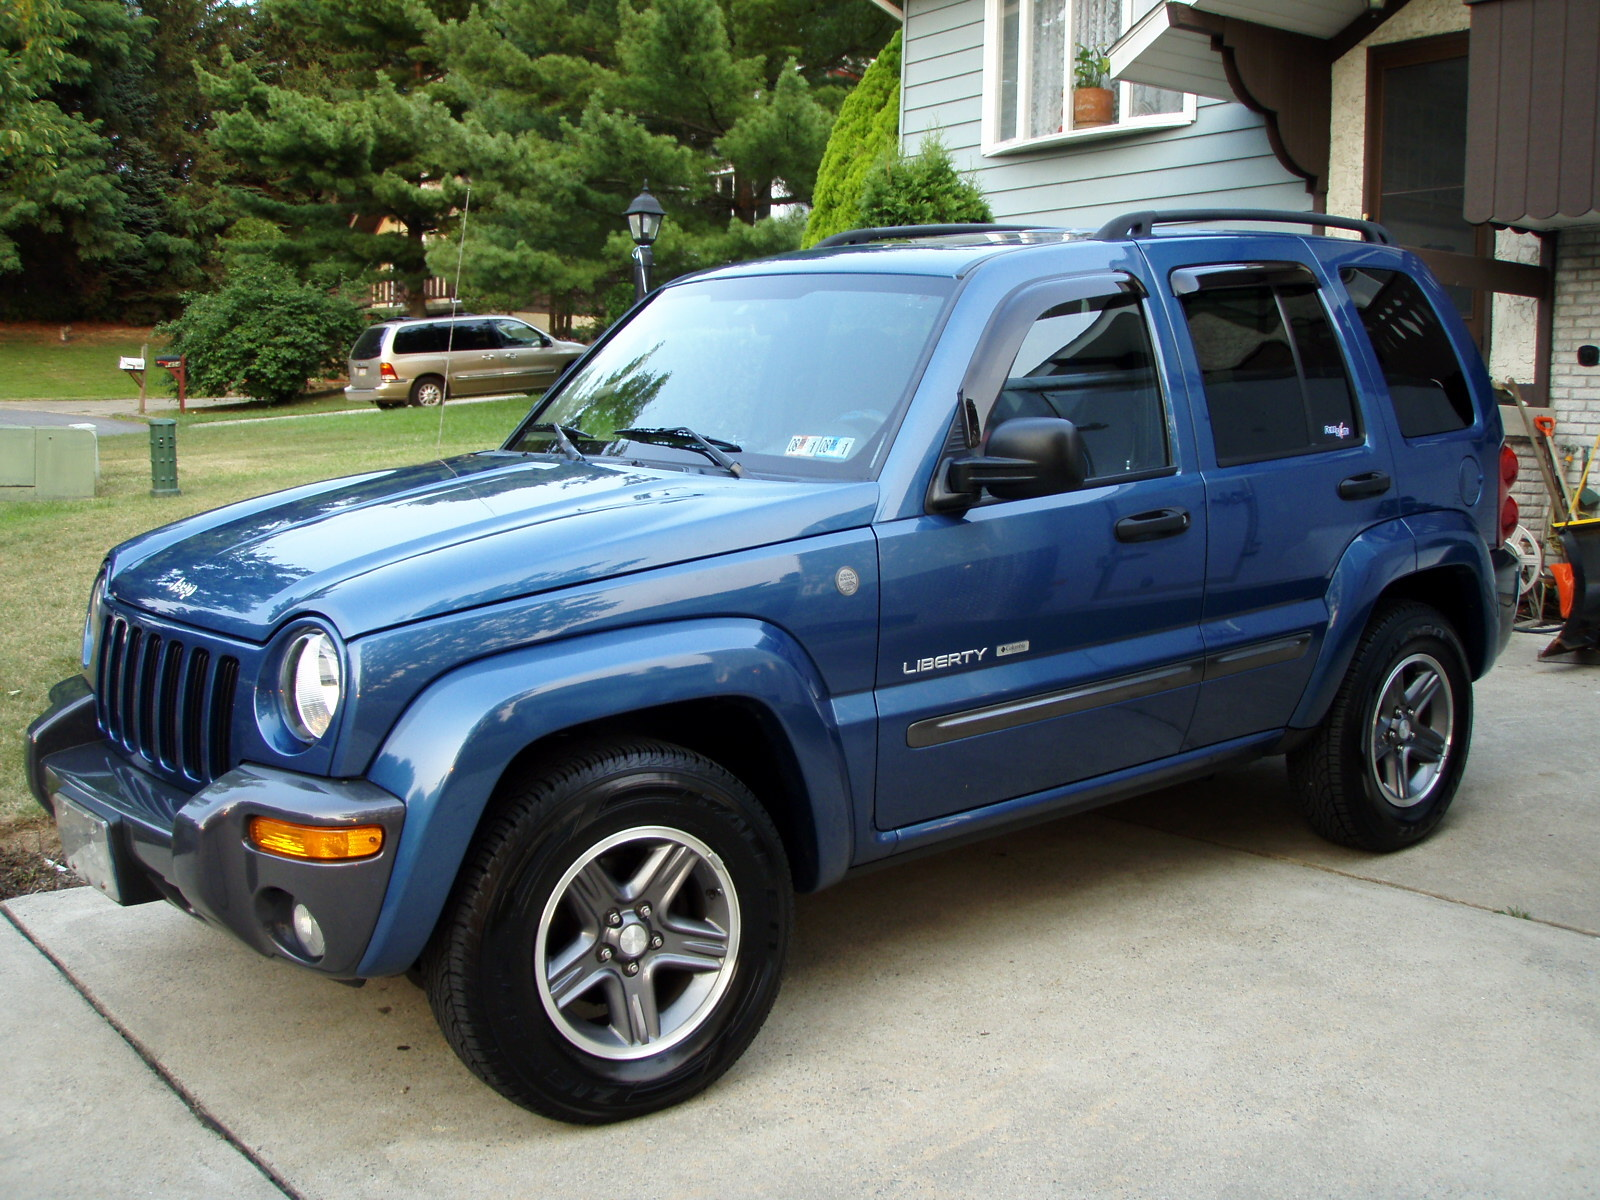 2004 Jeep Liberty - Overview - CarGurus